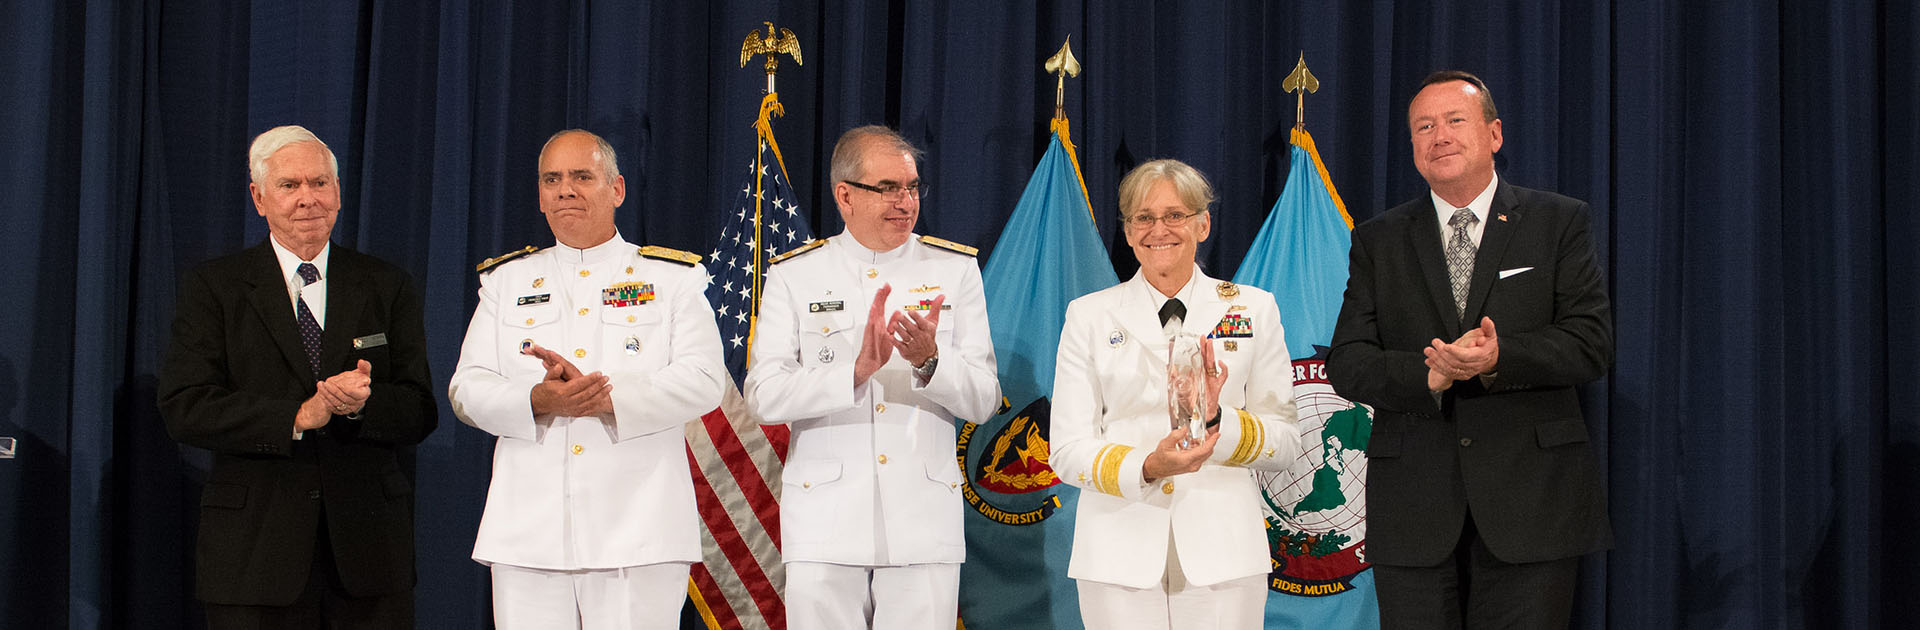 2014 Perry Awards for Excellence in Security and Defense Education